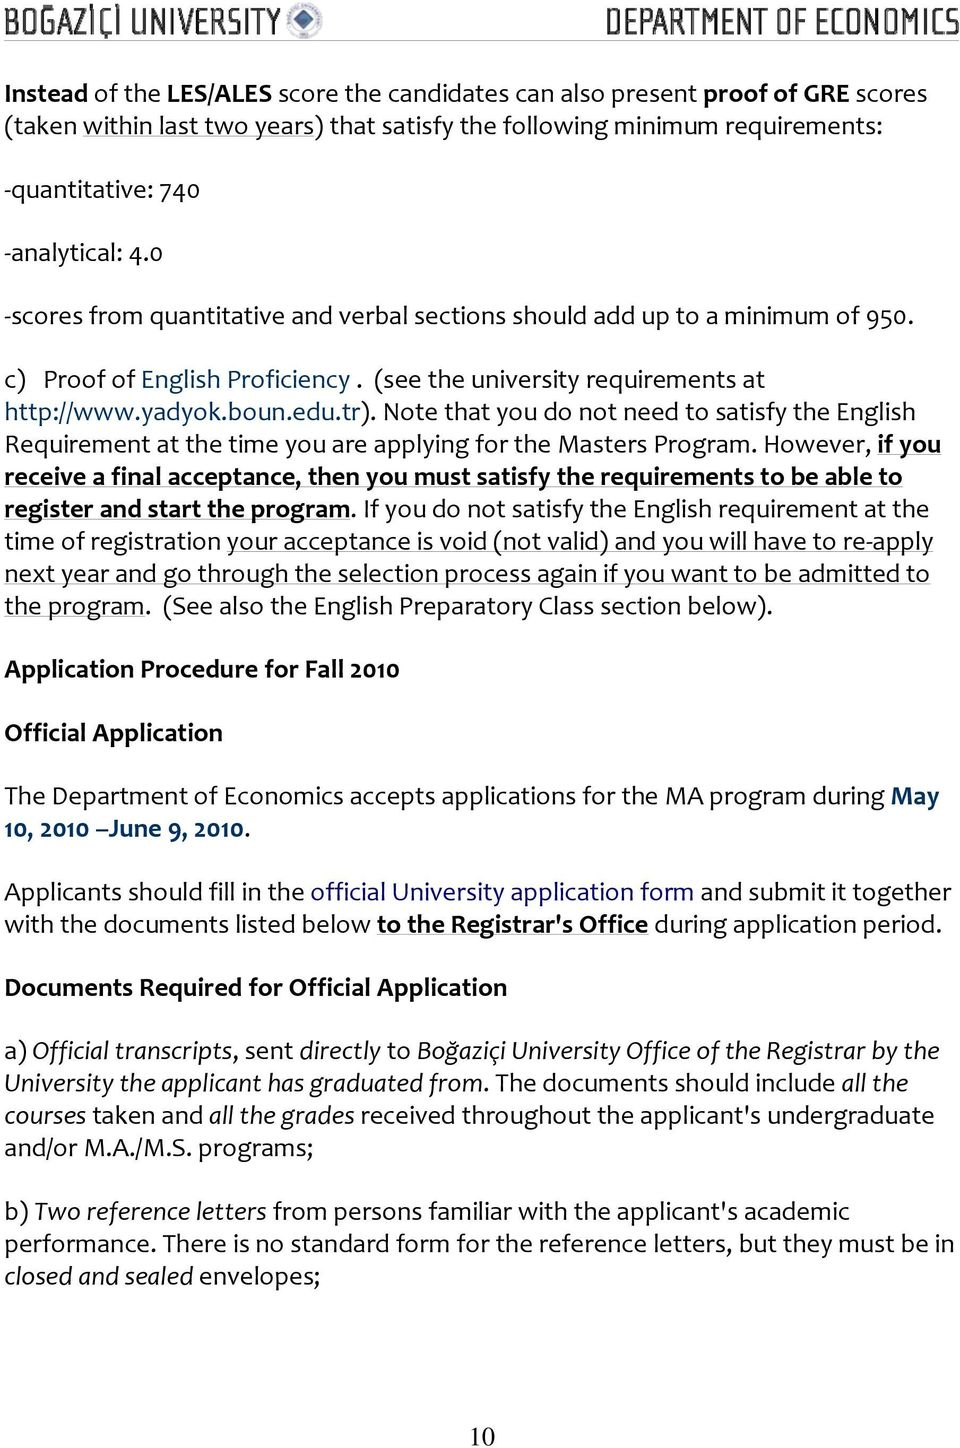 Note that you do not need to satisfy the English Requirement at the time you are applying for the Masters Program.